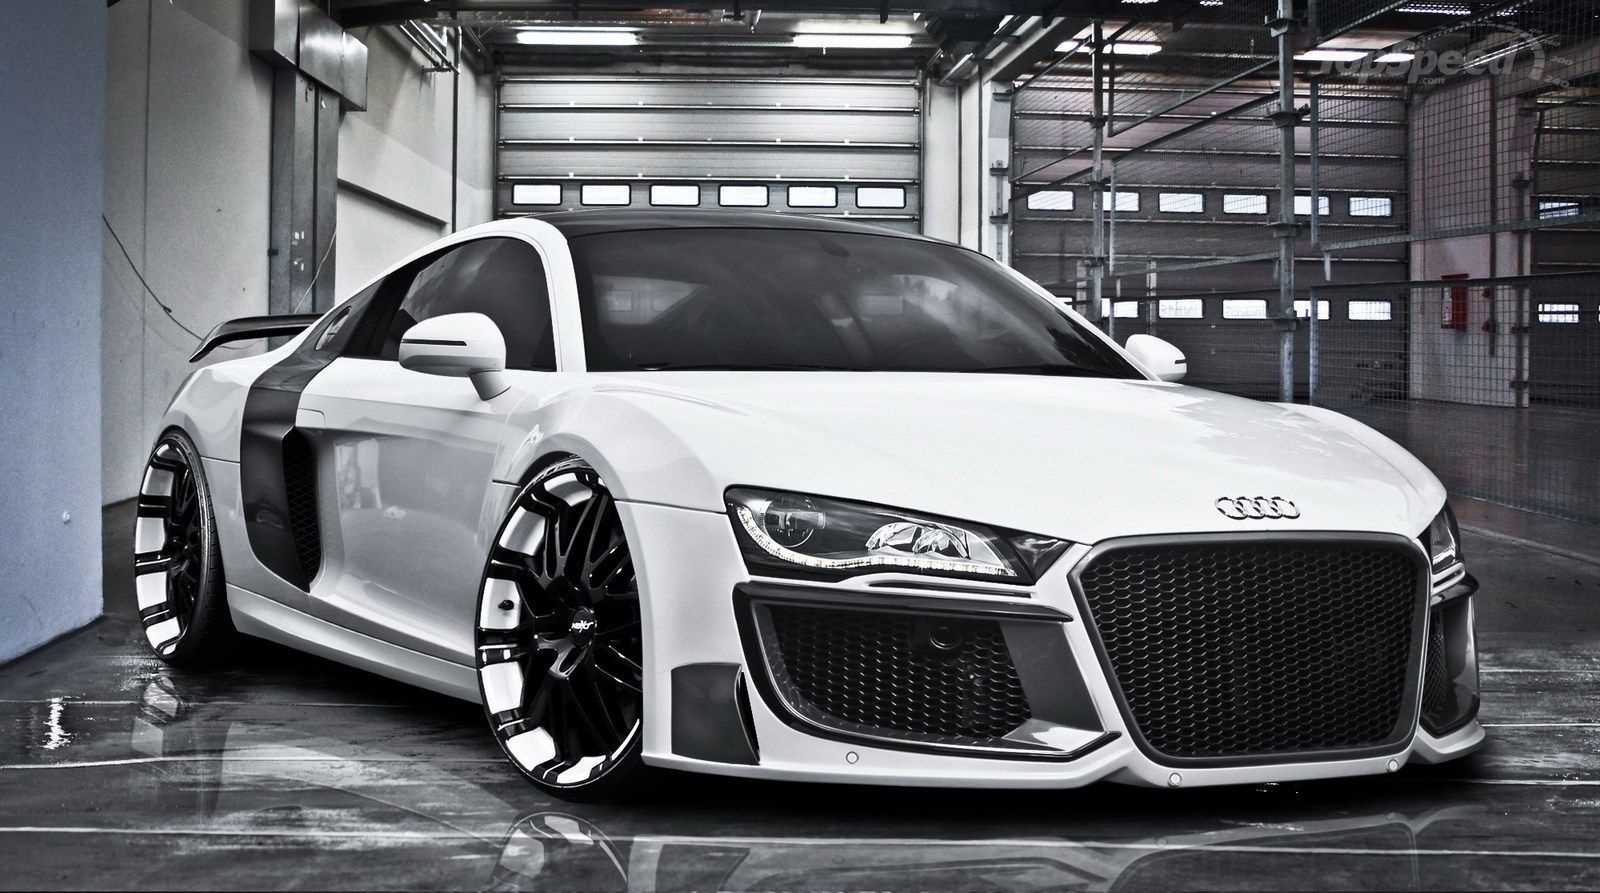 Attirant 2013 Audi R8 By Regula Exclusive | Car Review @ Top Speed